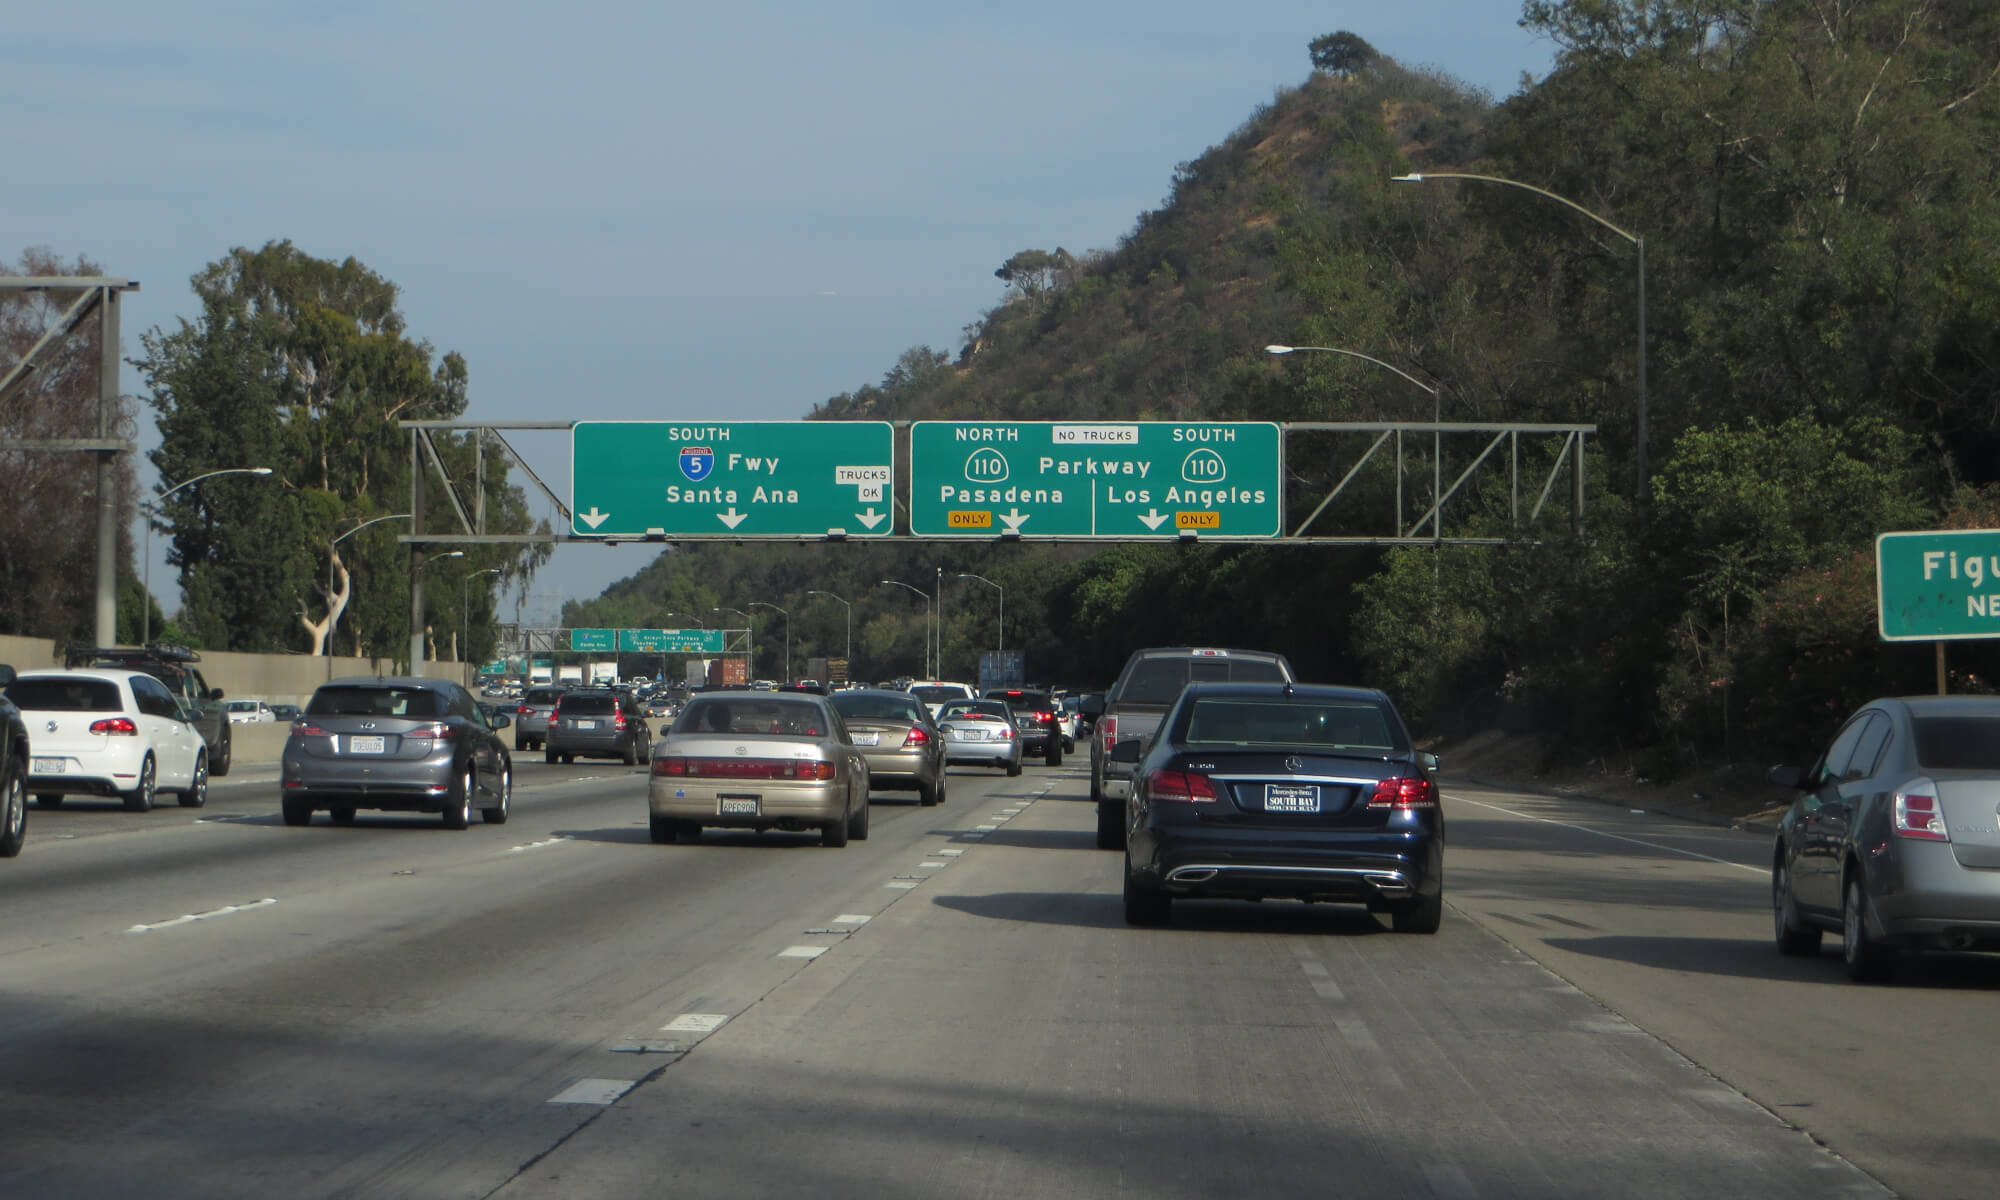 Highway signs for 110 in Los Angeles